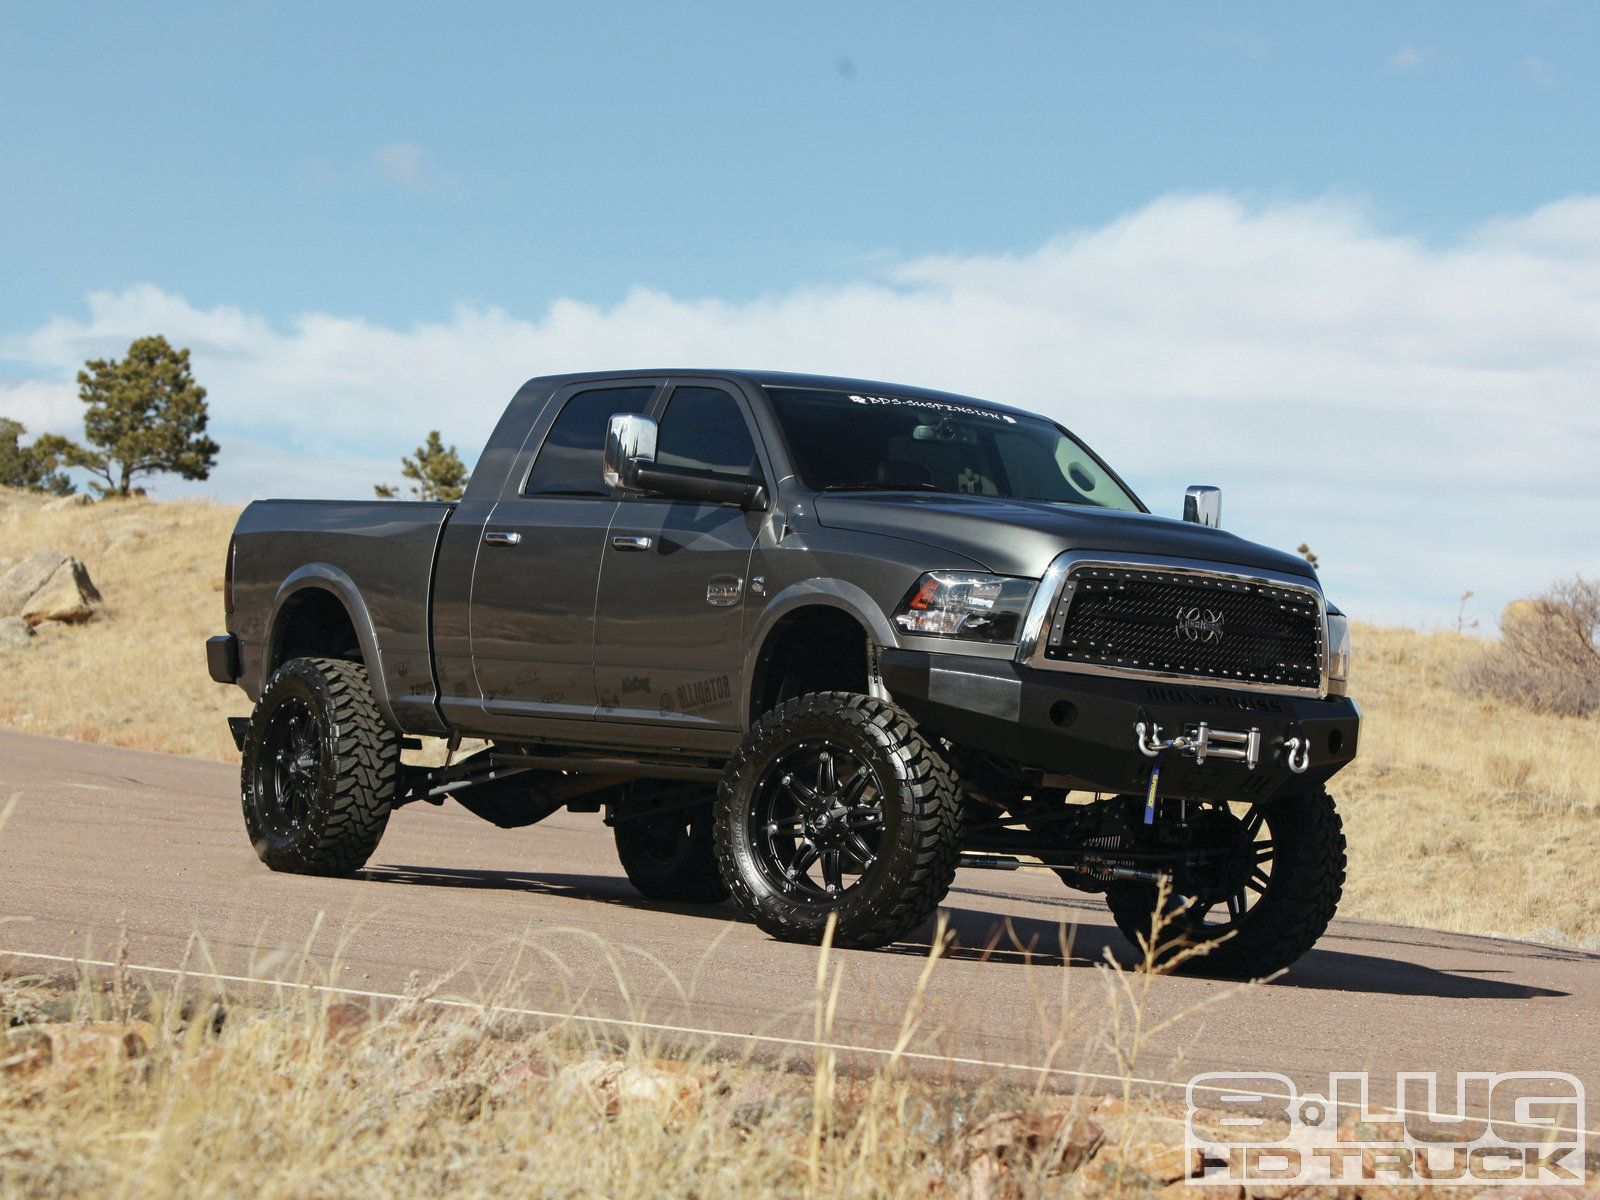 mega cab 2012 dodge ram 2500 mega cab - 2015 Dodge Ram 2500 Mega Cab Lifted Interior